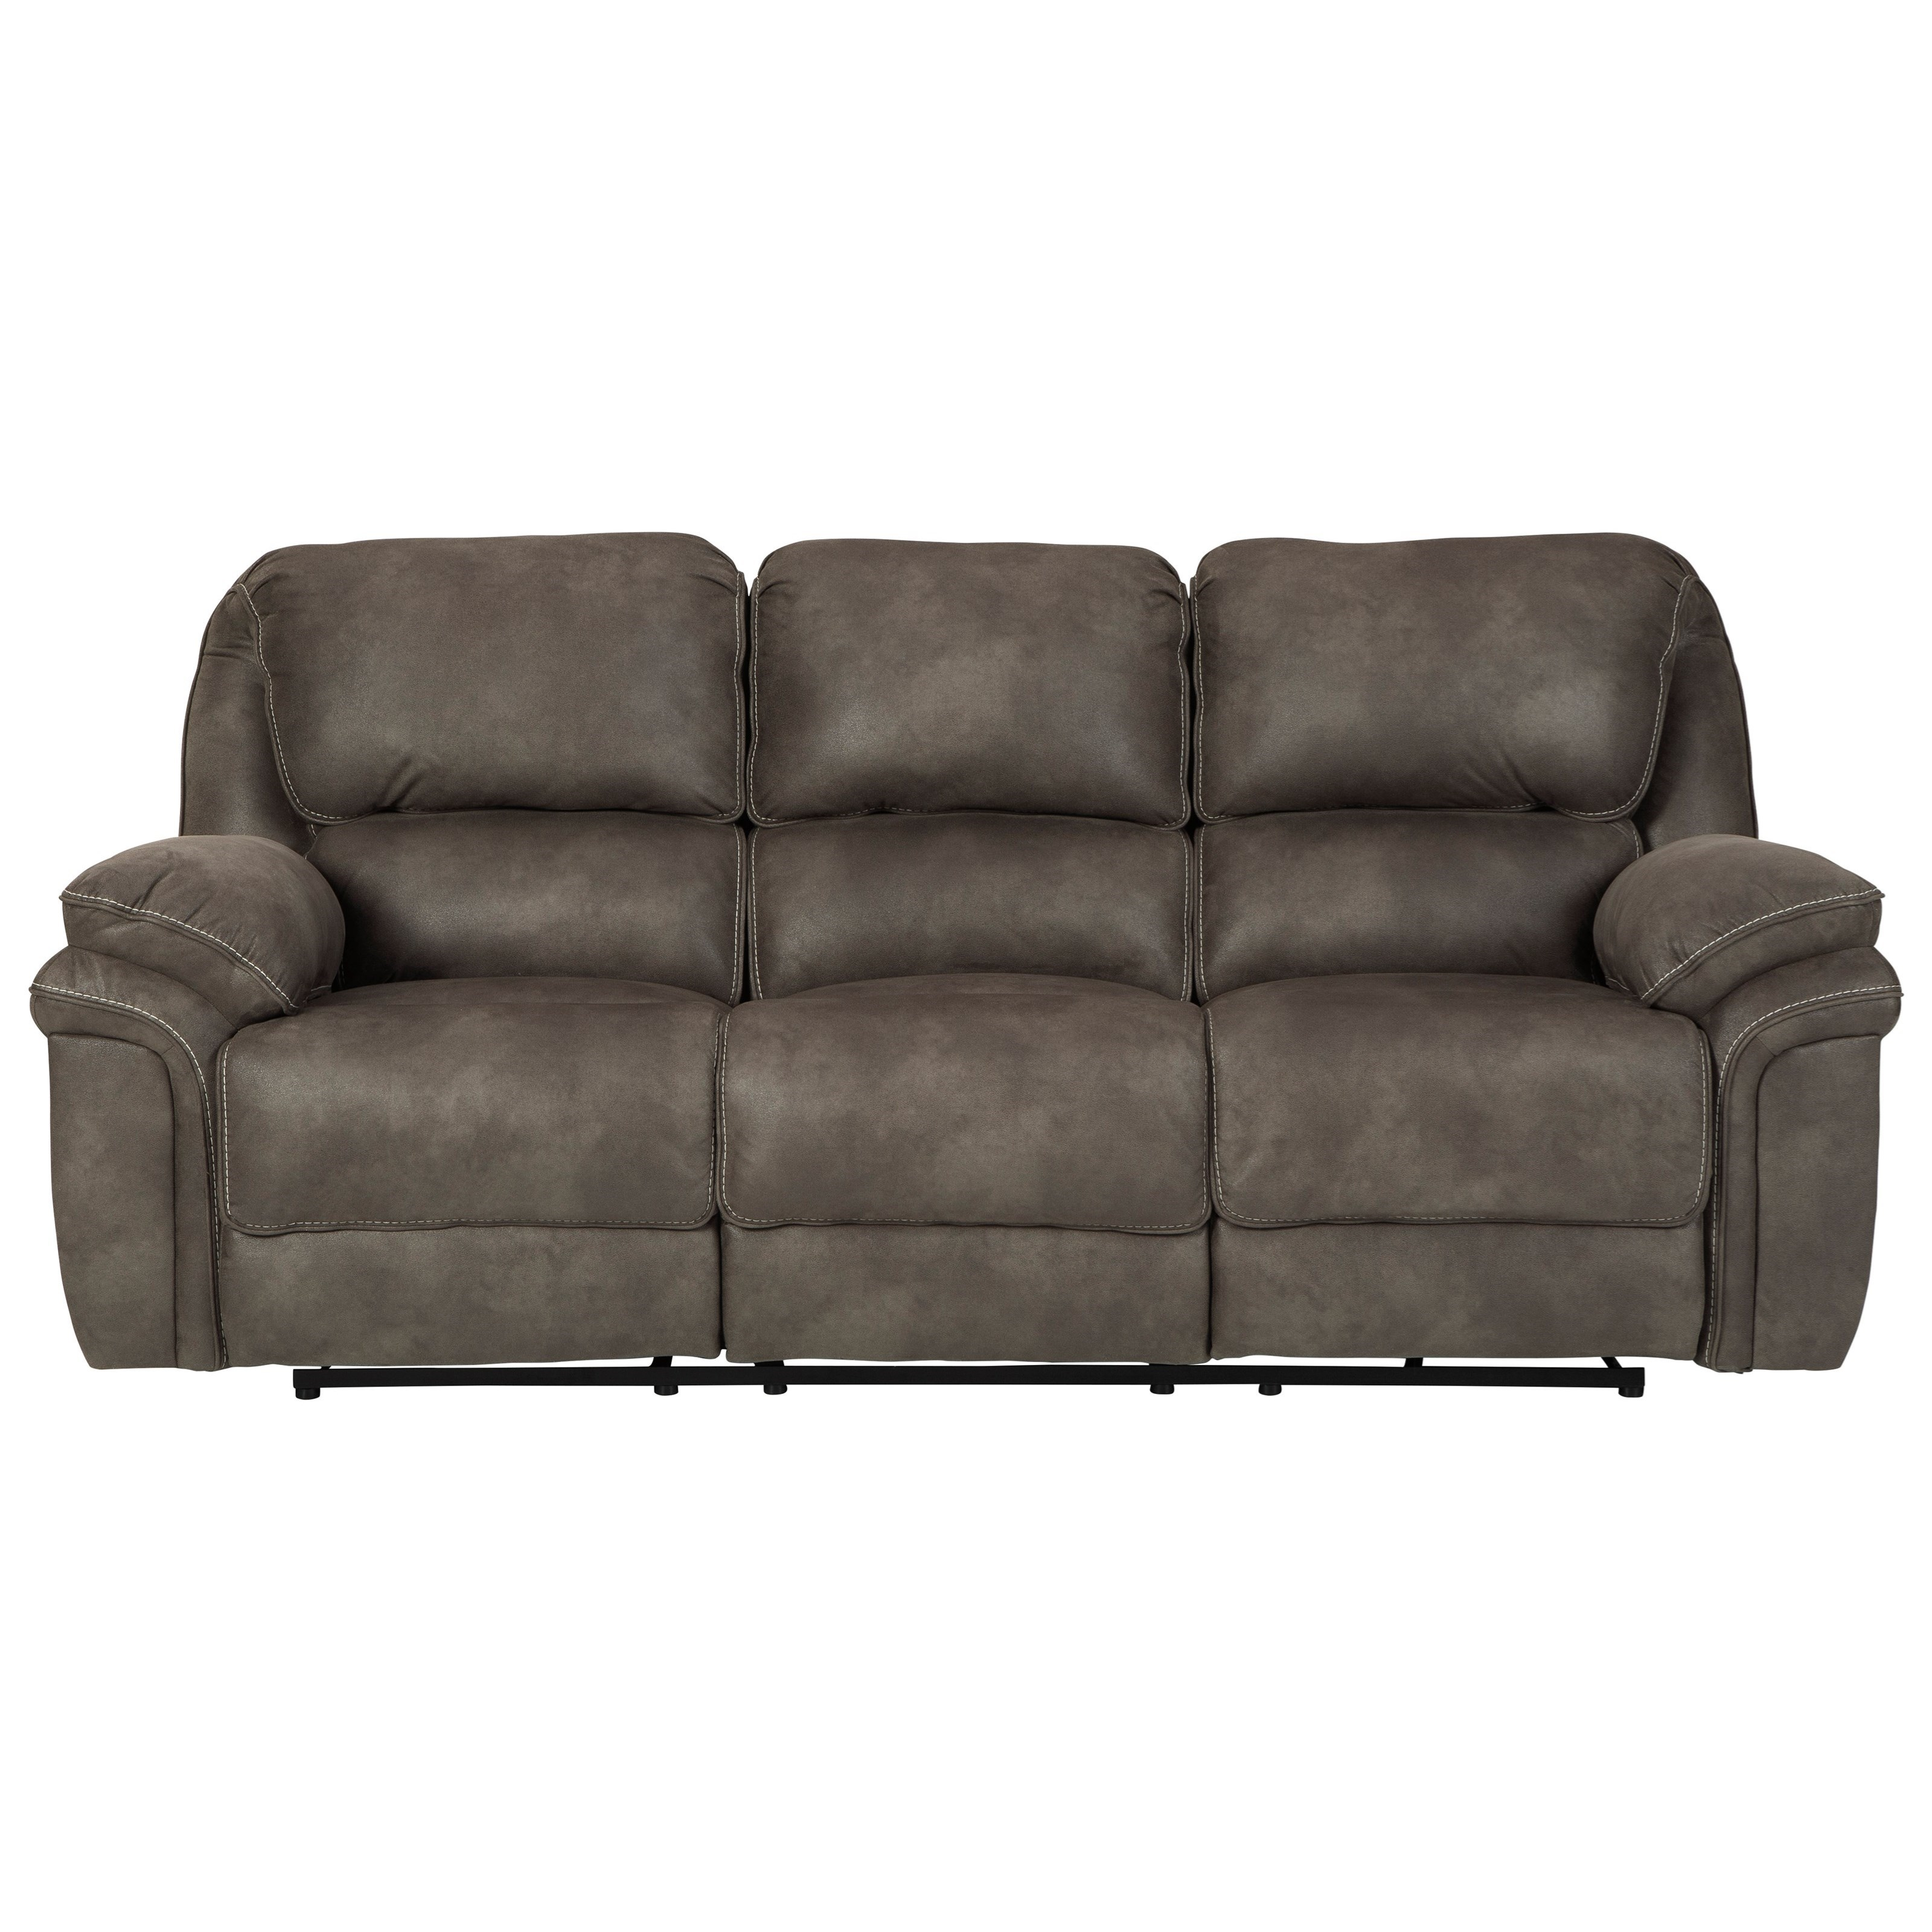 Trementon Reclining Sofa by Benchcraft at Miller Waldrop Furniture and Decor